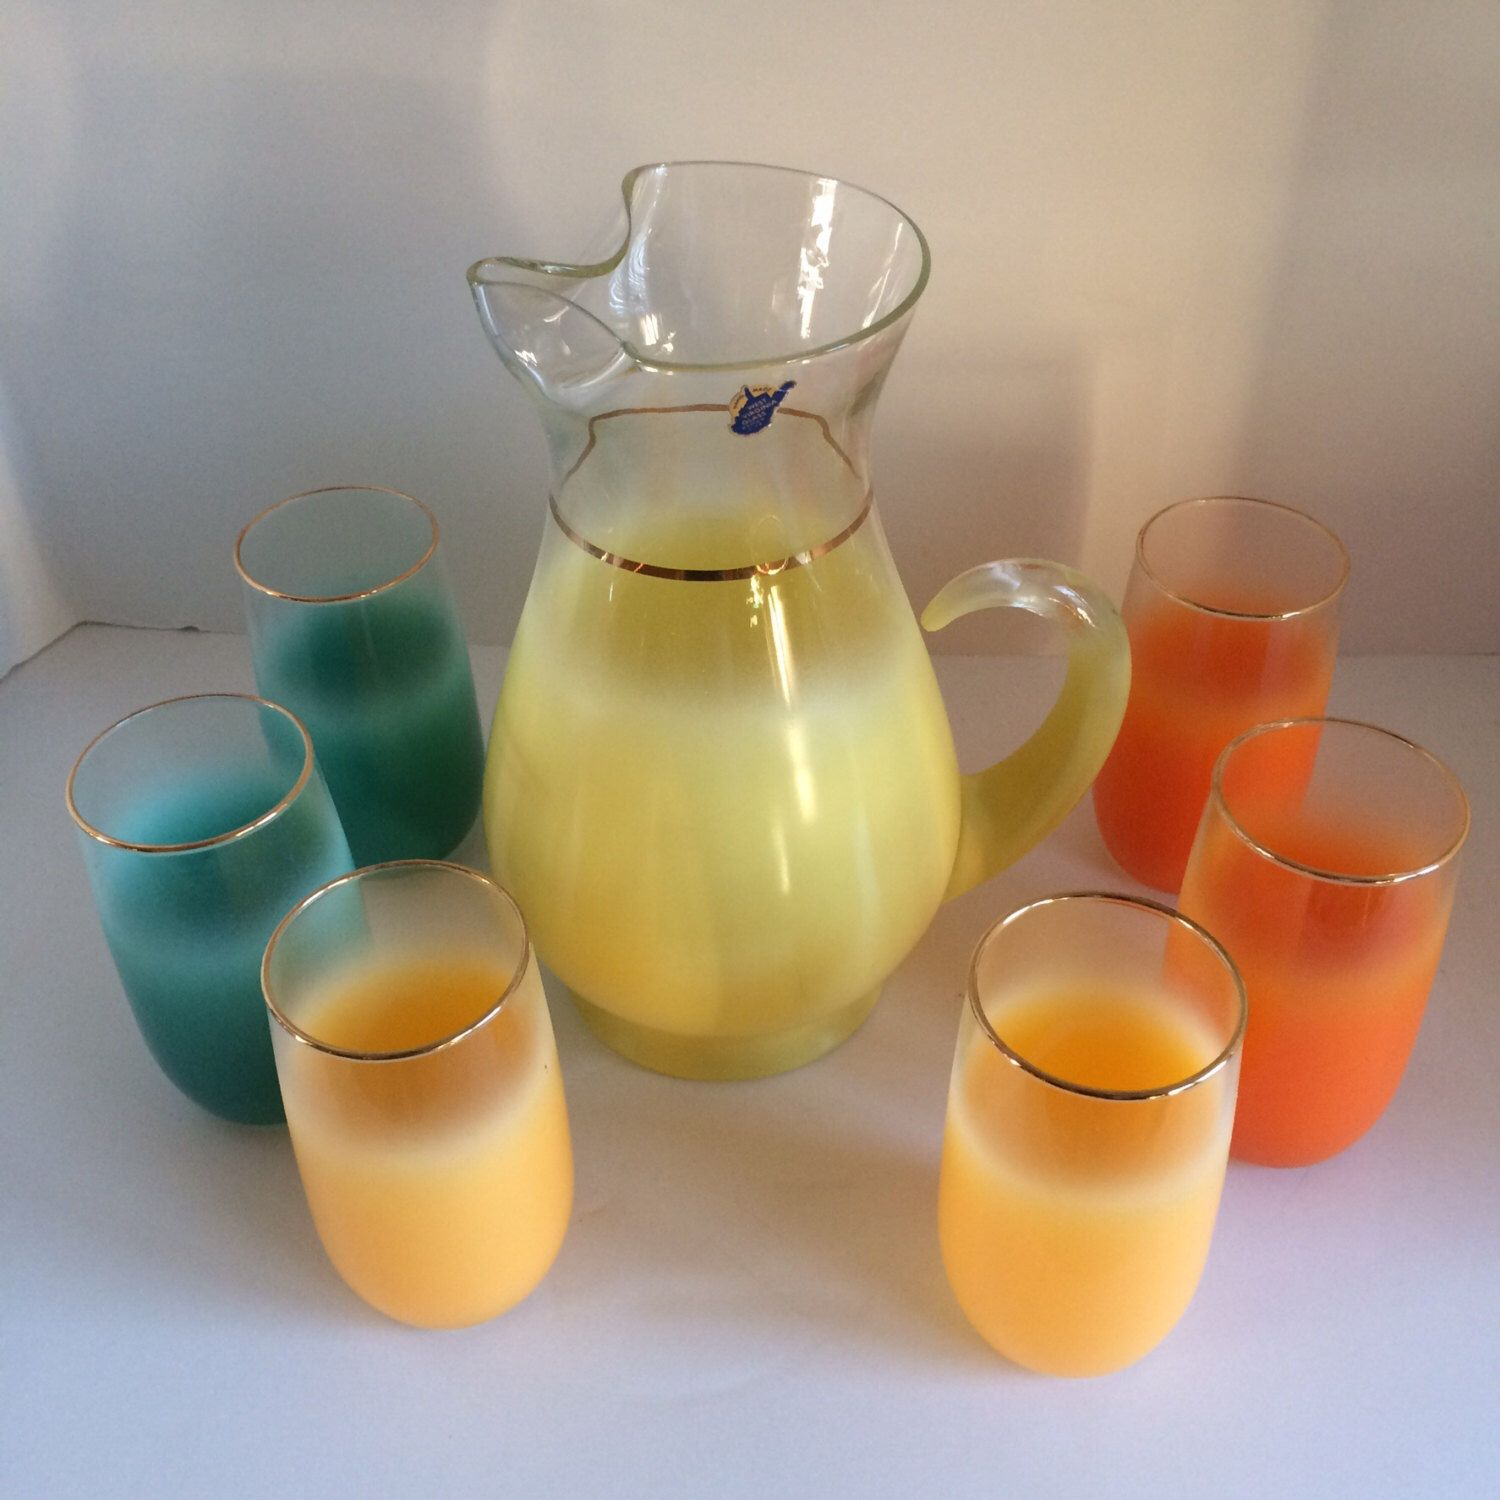 Gorgeous Blendo Pitcher and Six Glasses, Yellow, Orange, Turquoise, Mid Century Bar,  Unused New Condition, Original Manufacturers Sticker by CountryGirlsVintage on Etsy https://www.etsy.com/listing/225600836/gorgeous-blendo-pitcher-and-six-glasses